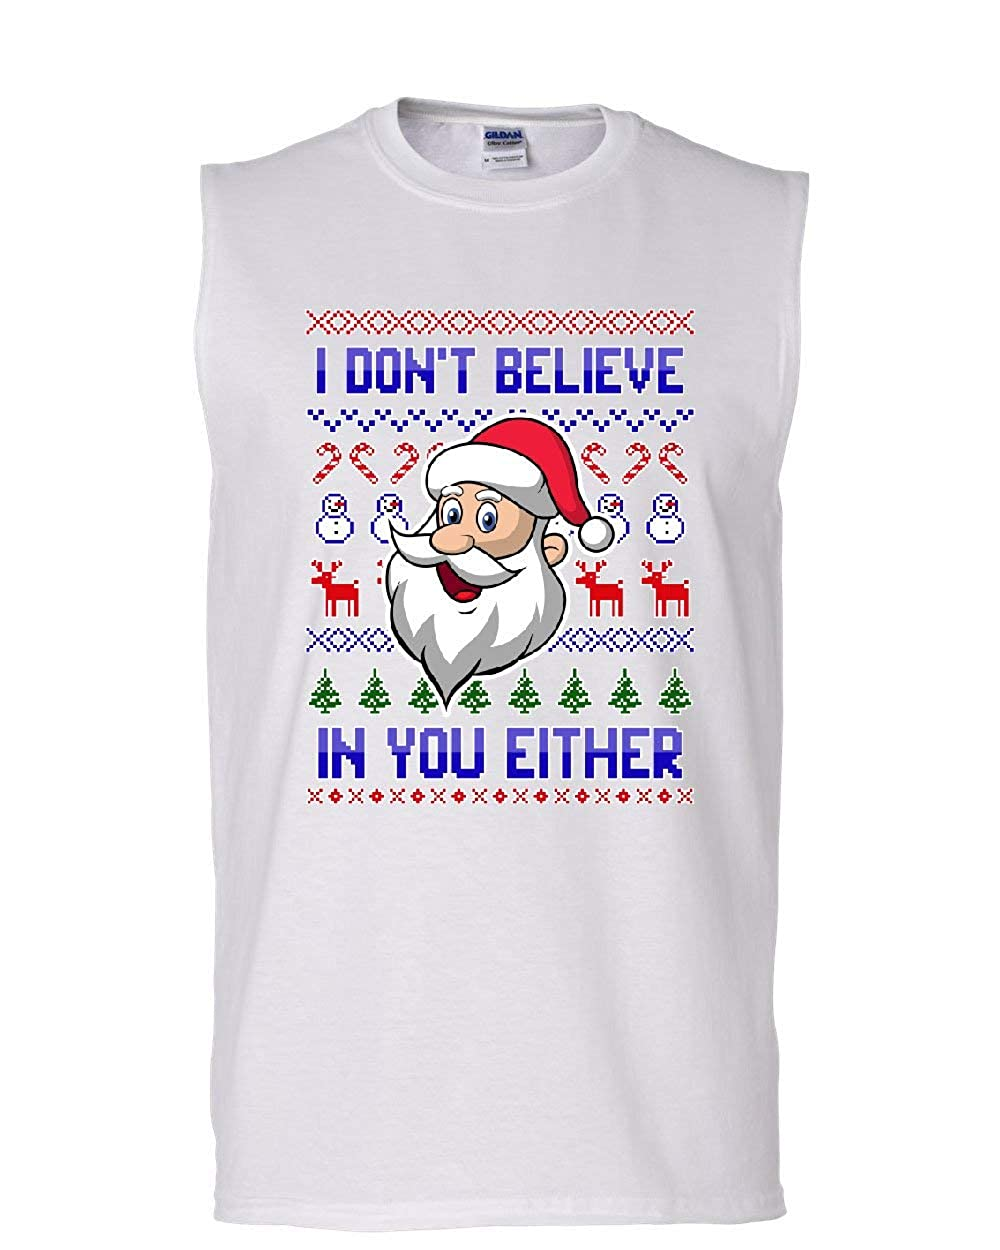 I Dont Believe in You Either Muscle Shirt Christmas Xmas Santa Ugly Sleeveless